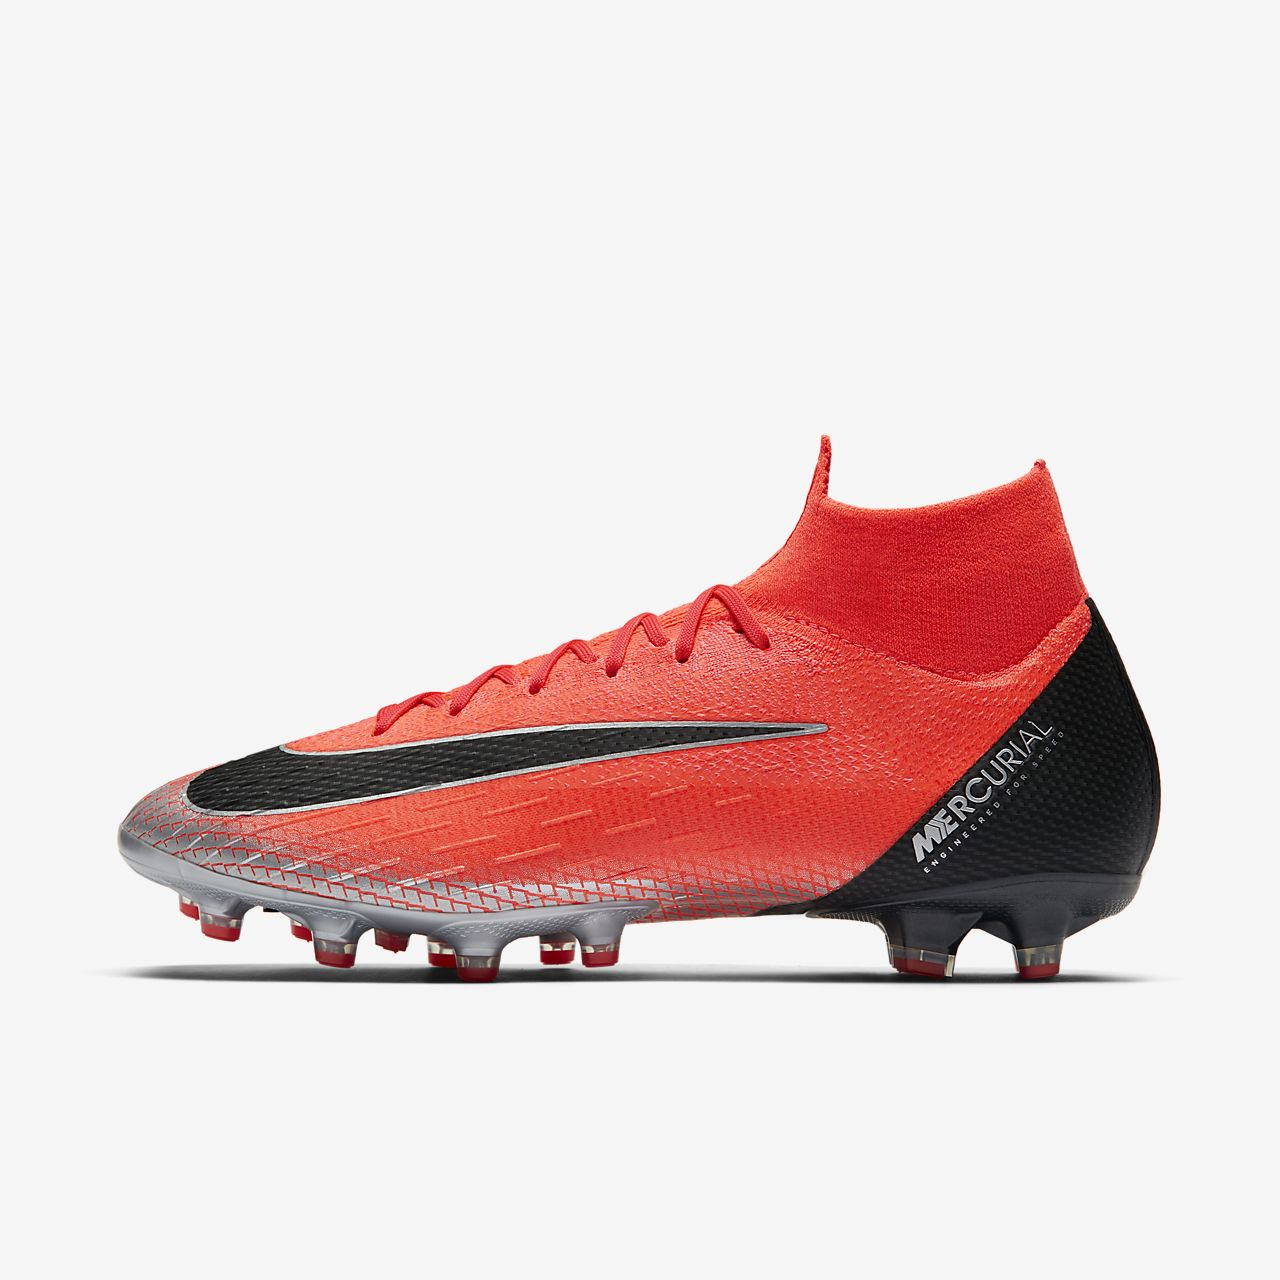 Cr7 Superflyx 6 Elite Fussballschuh Fur Kunstrasen Nike Com Be